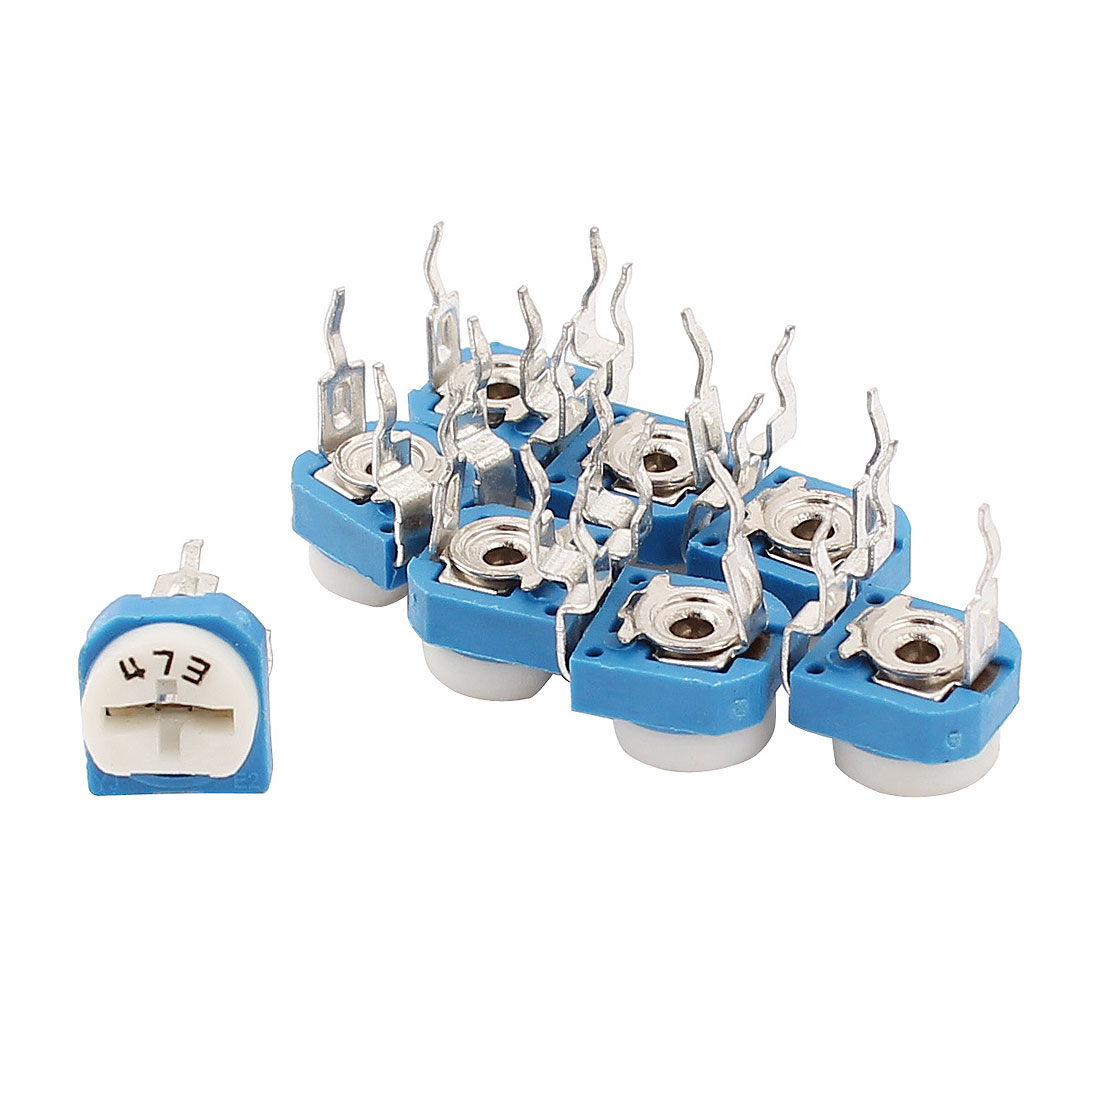 8 Pcs DVD VCD 47K Ohm Triming Potentiometer Adjustable Resistor WH06-2